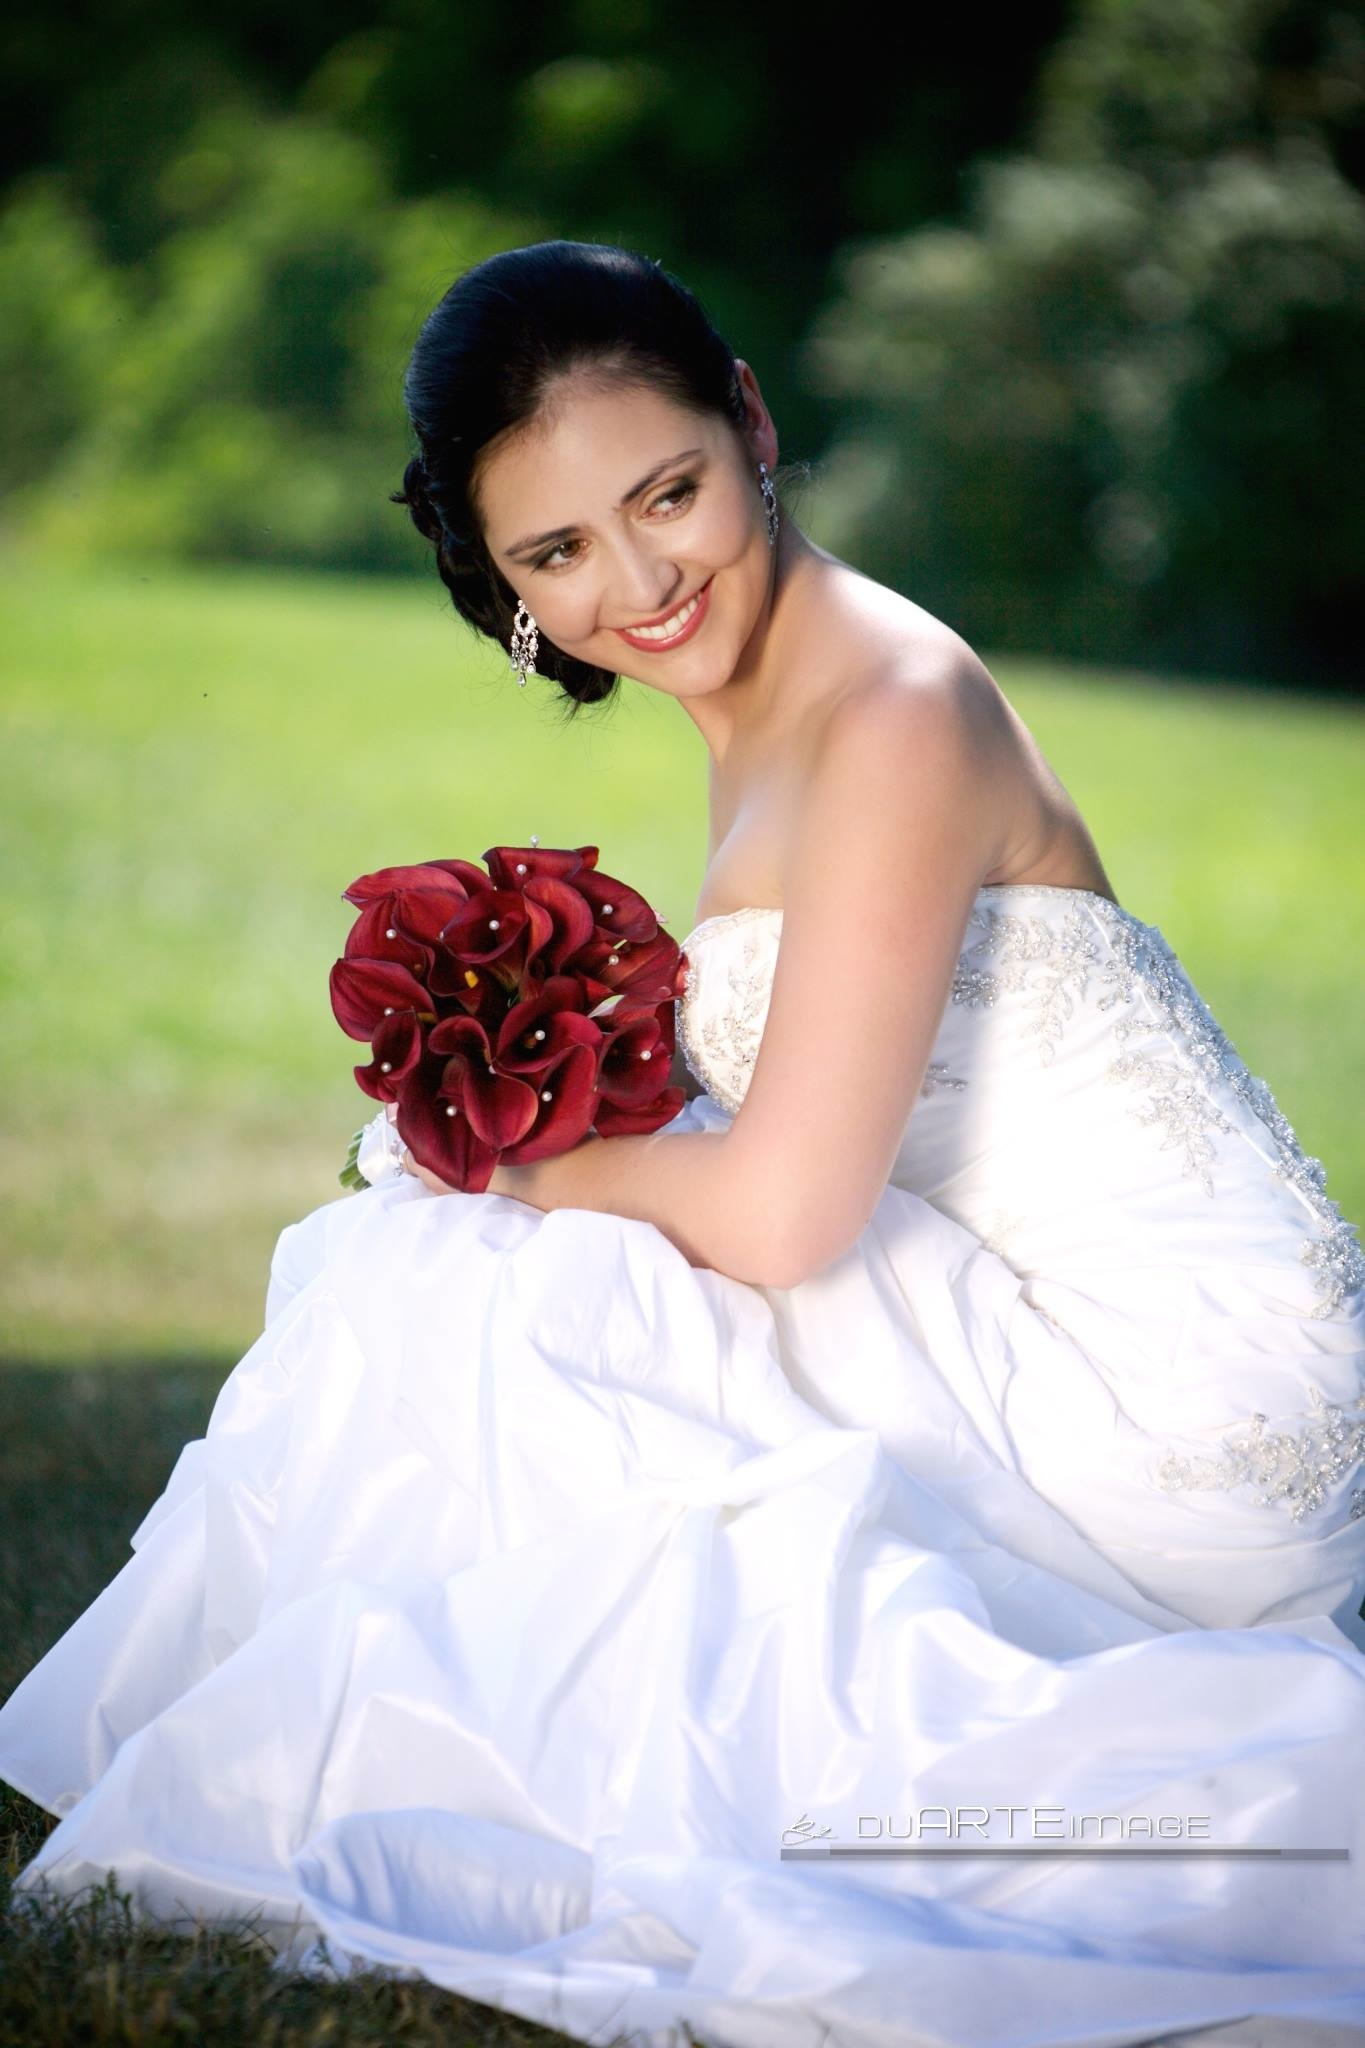 Duarteimage weddings 061.jpg